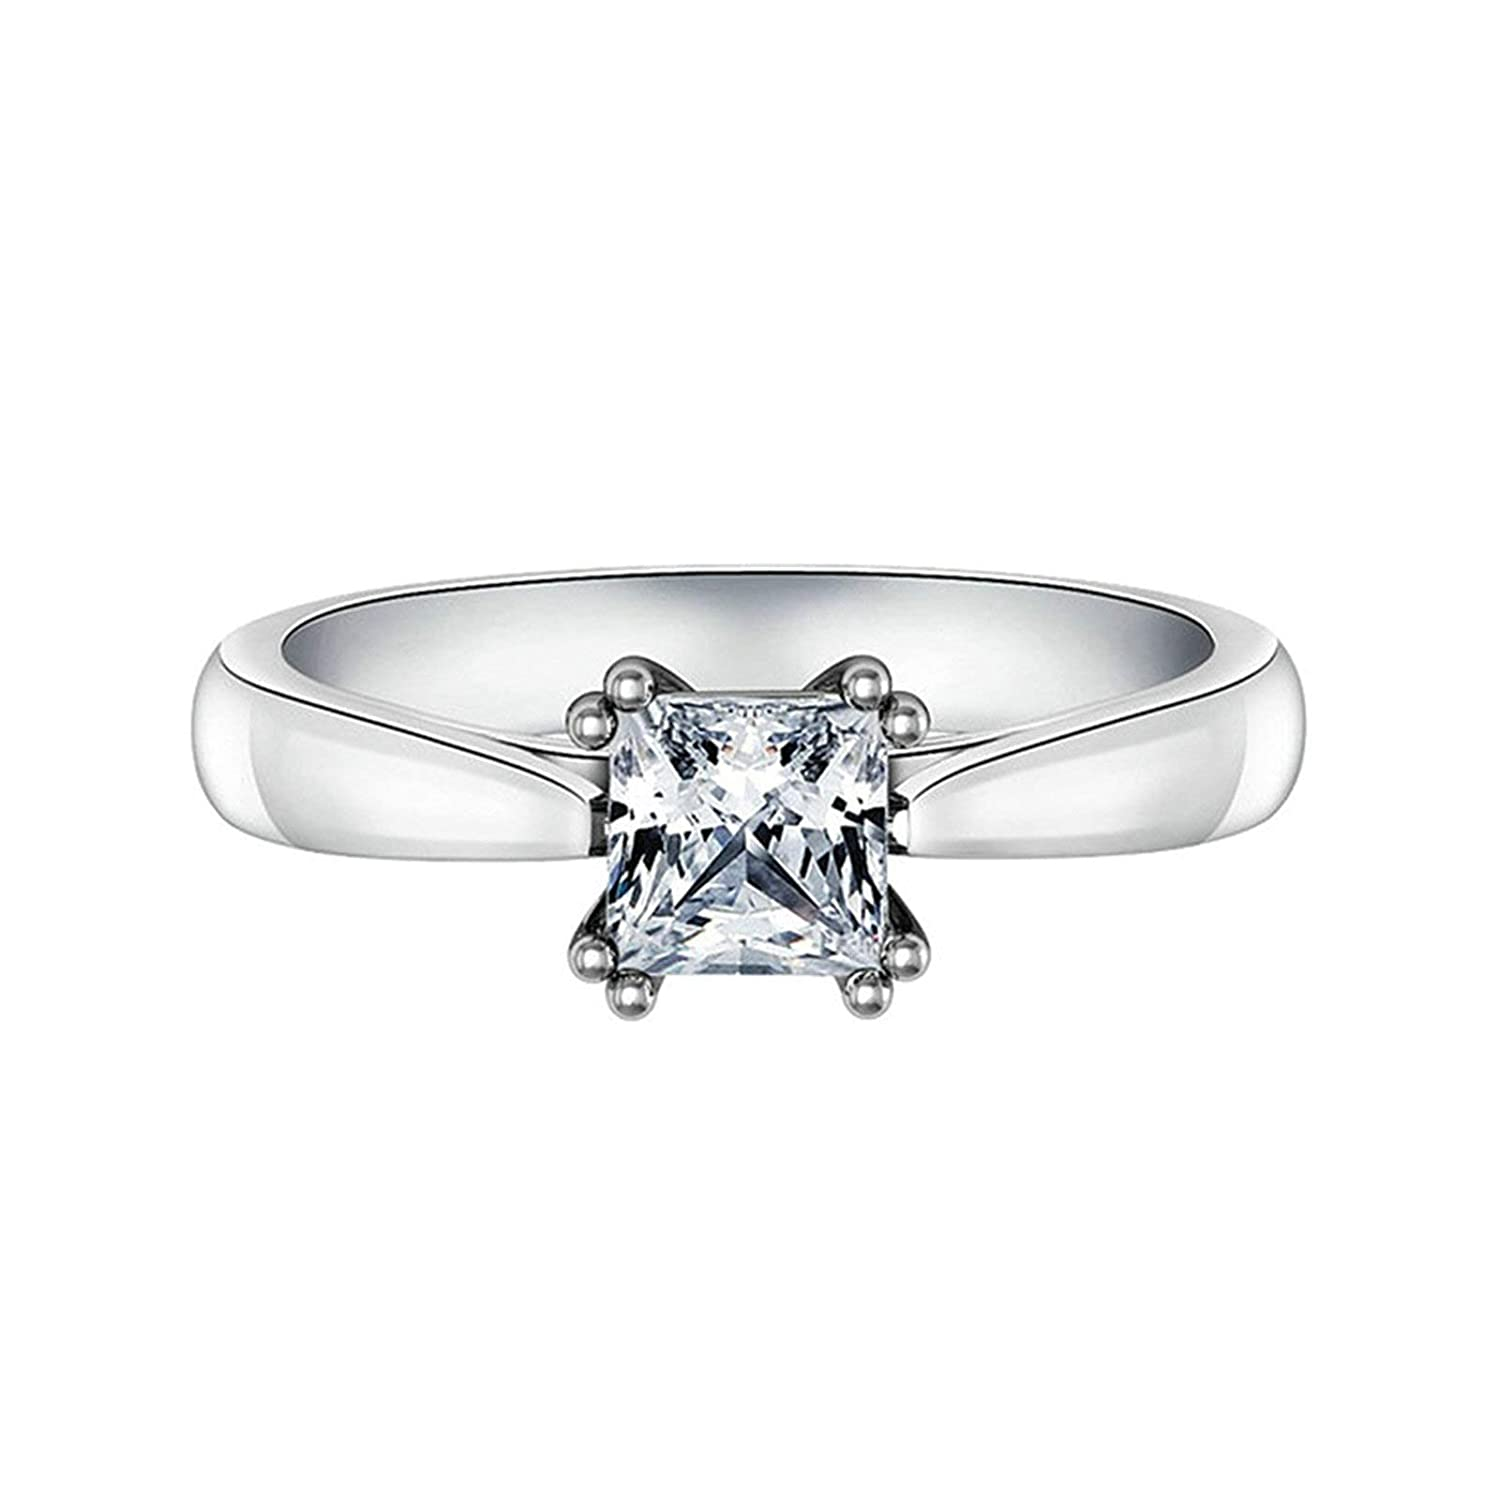 e5d47976fd17f Aooaz Jewelry Wedding Ring Silver Material 4 Claw Square Ring for ...